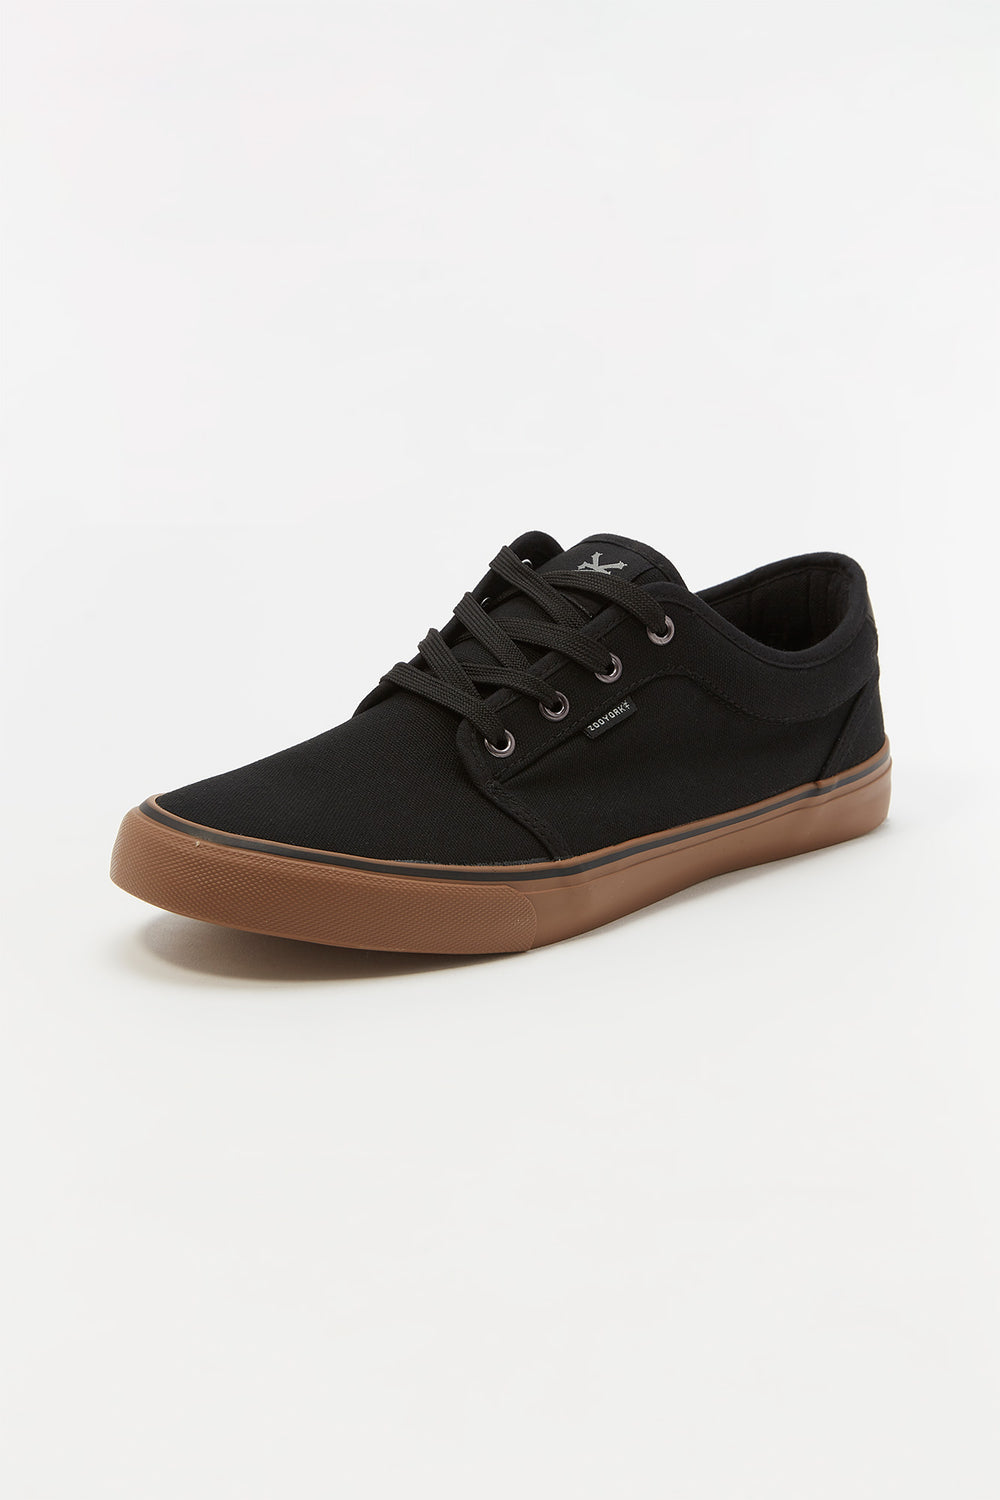 Zoo York Mens Canvas Skate Shoes Pure Black